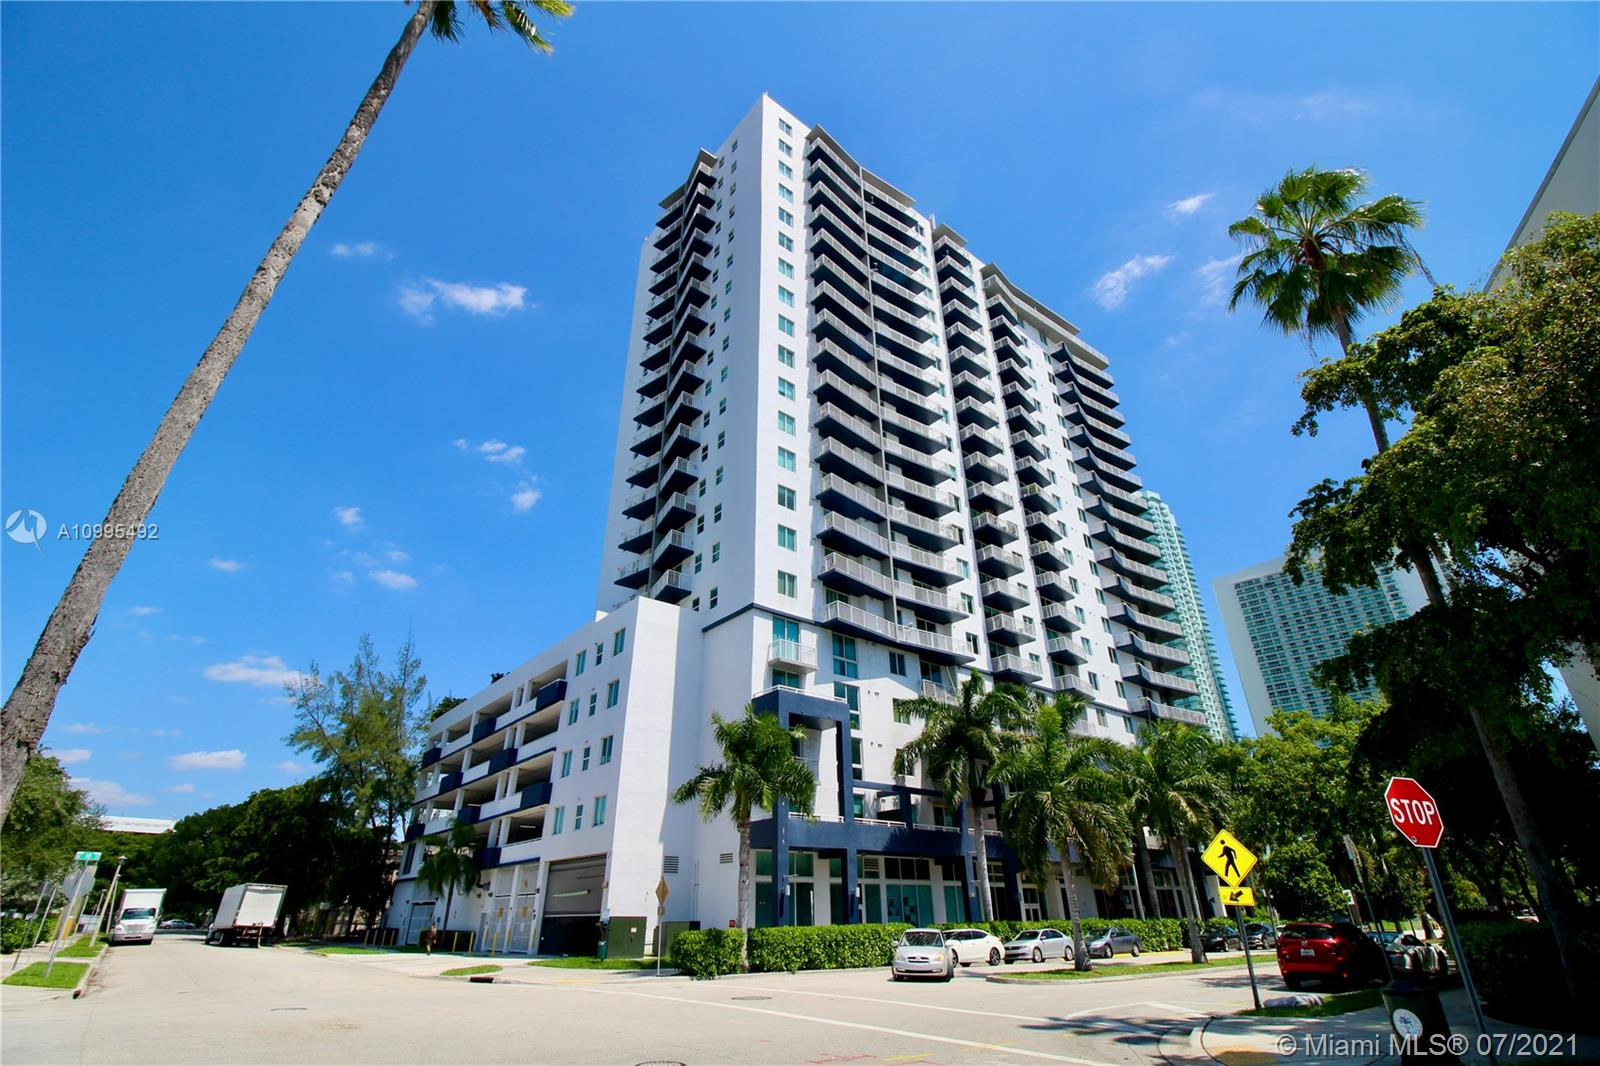 Amazing extra big corner unit (1,171 SF!!) 2/1 in outstanding building & location, fantastic city views over US1!! Near the Art District and few blocks from Downtown Miami!! Huge floor to ceiling bay windows, beautiful marble and laminated wood floors, high ceilings, excellent layout, open kitchen with granite countertops, washer & dryer inside. Parking space a few steps away unit's entrance. 1800 Biscayne Plaza has modern lobby, fantastic pool area and fully equiped gym. (Unit leased for $2,100/month, until 10/17/21).   (One of the largest units in the building).